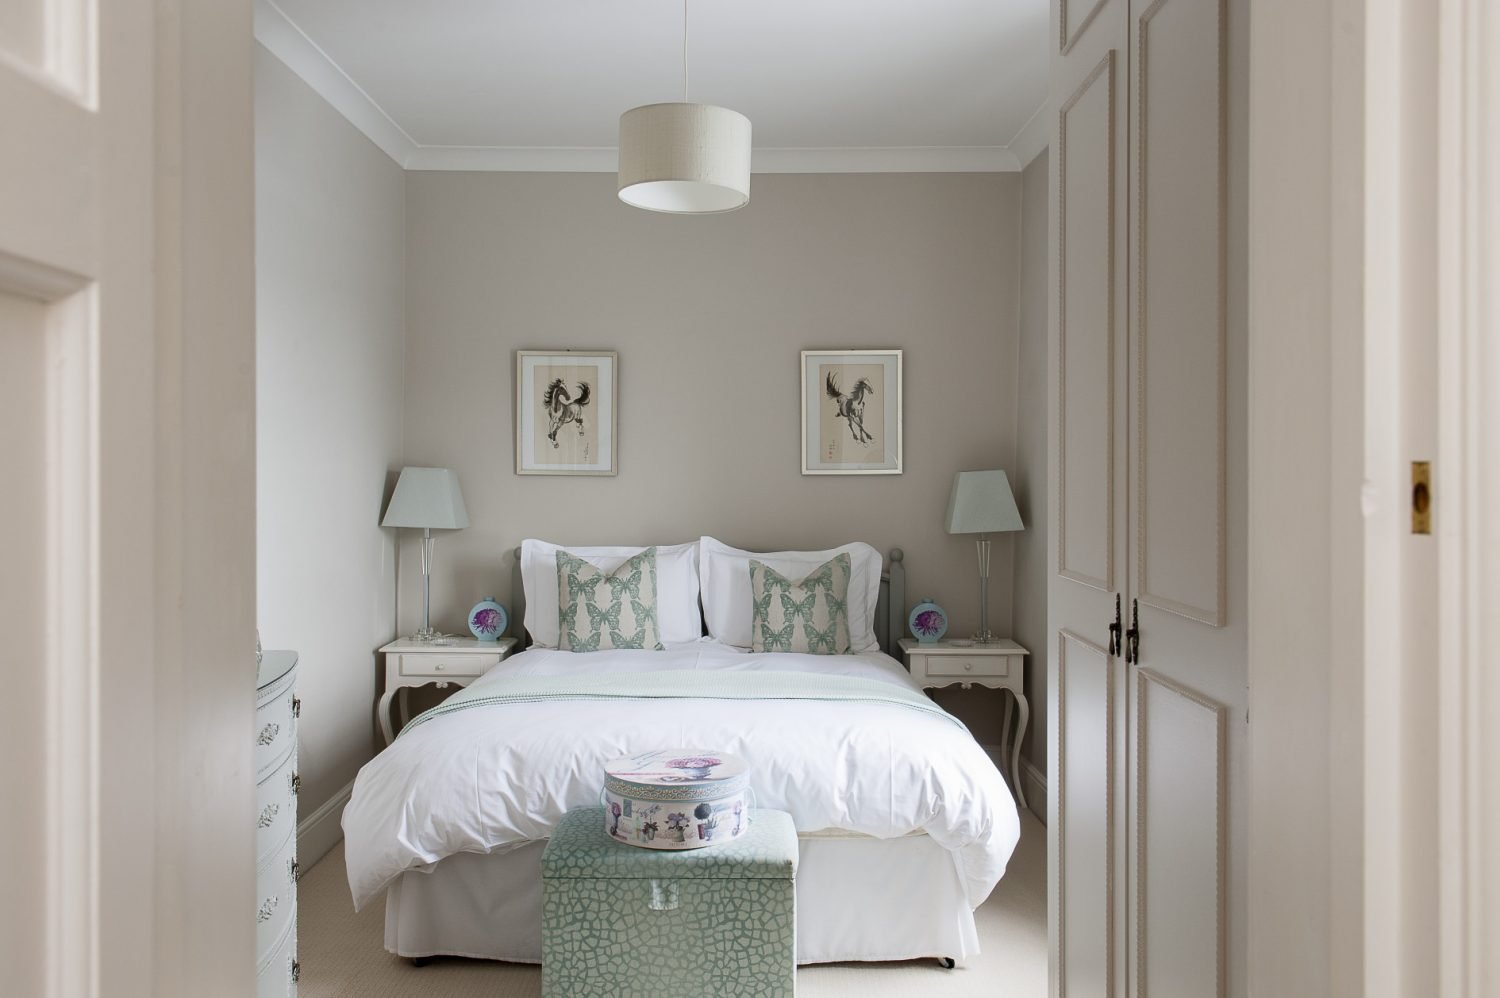 A guest bedroom features accents of robin's egg blue